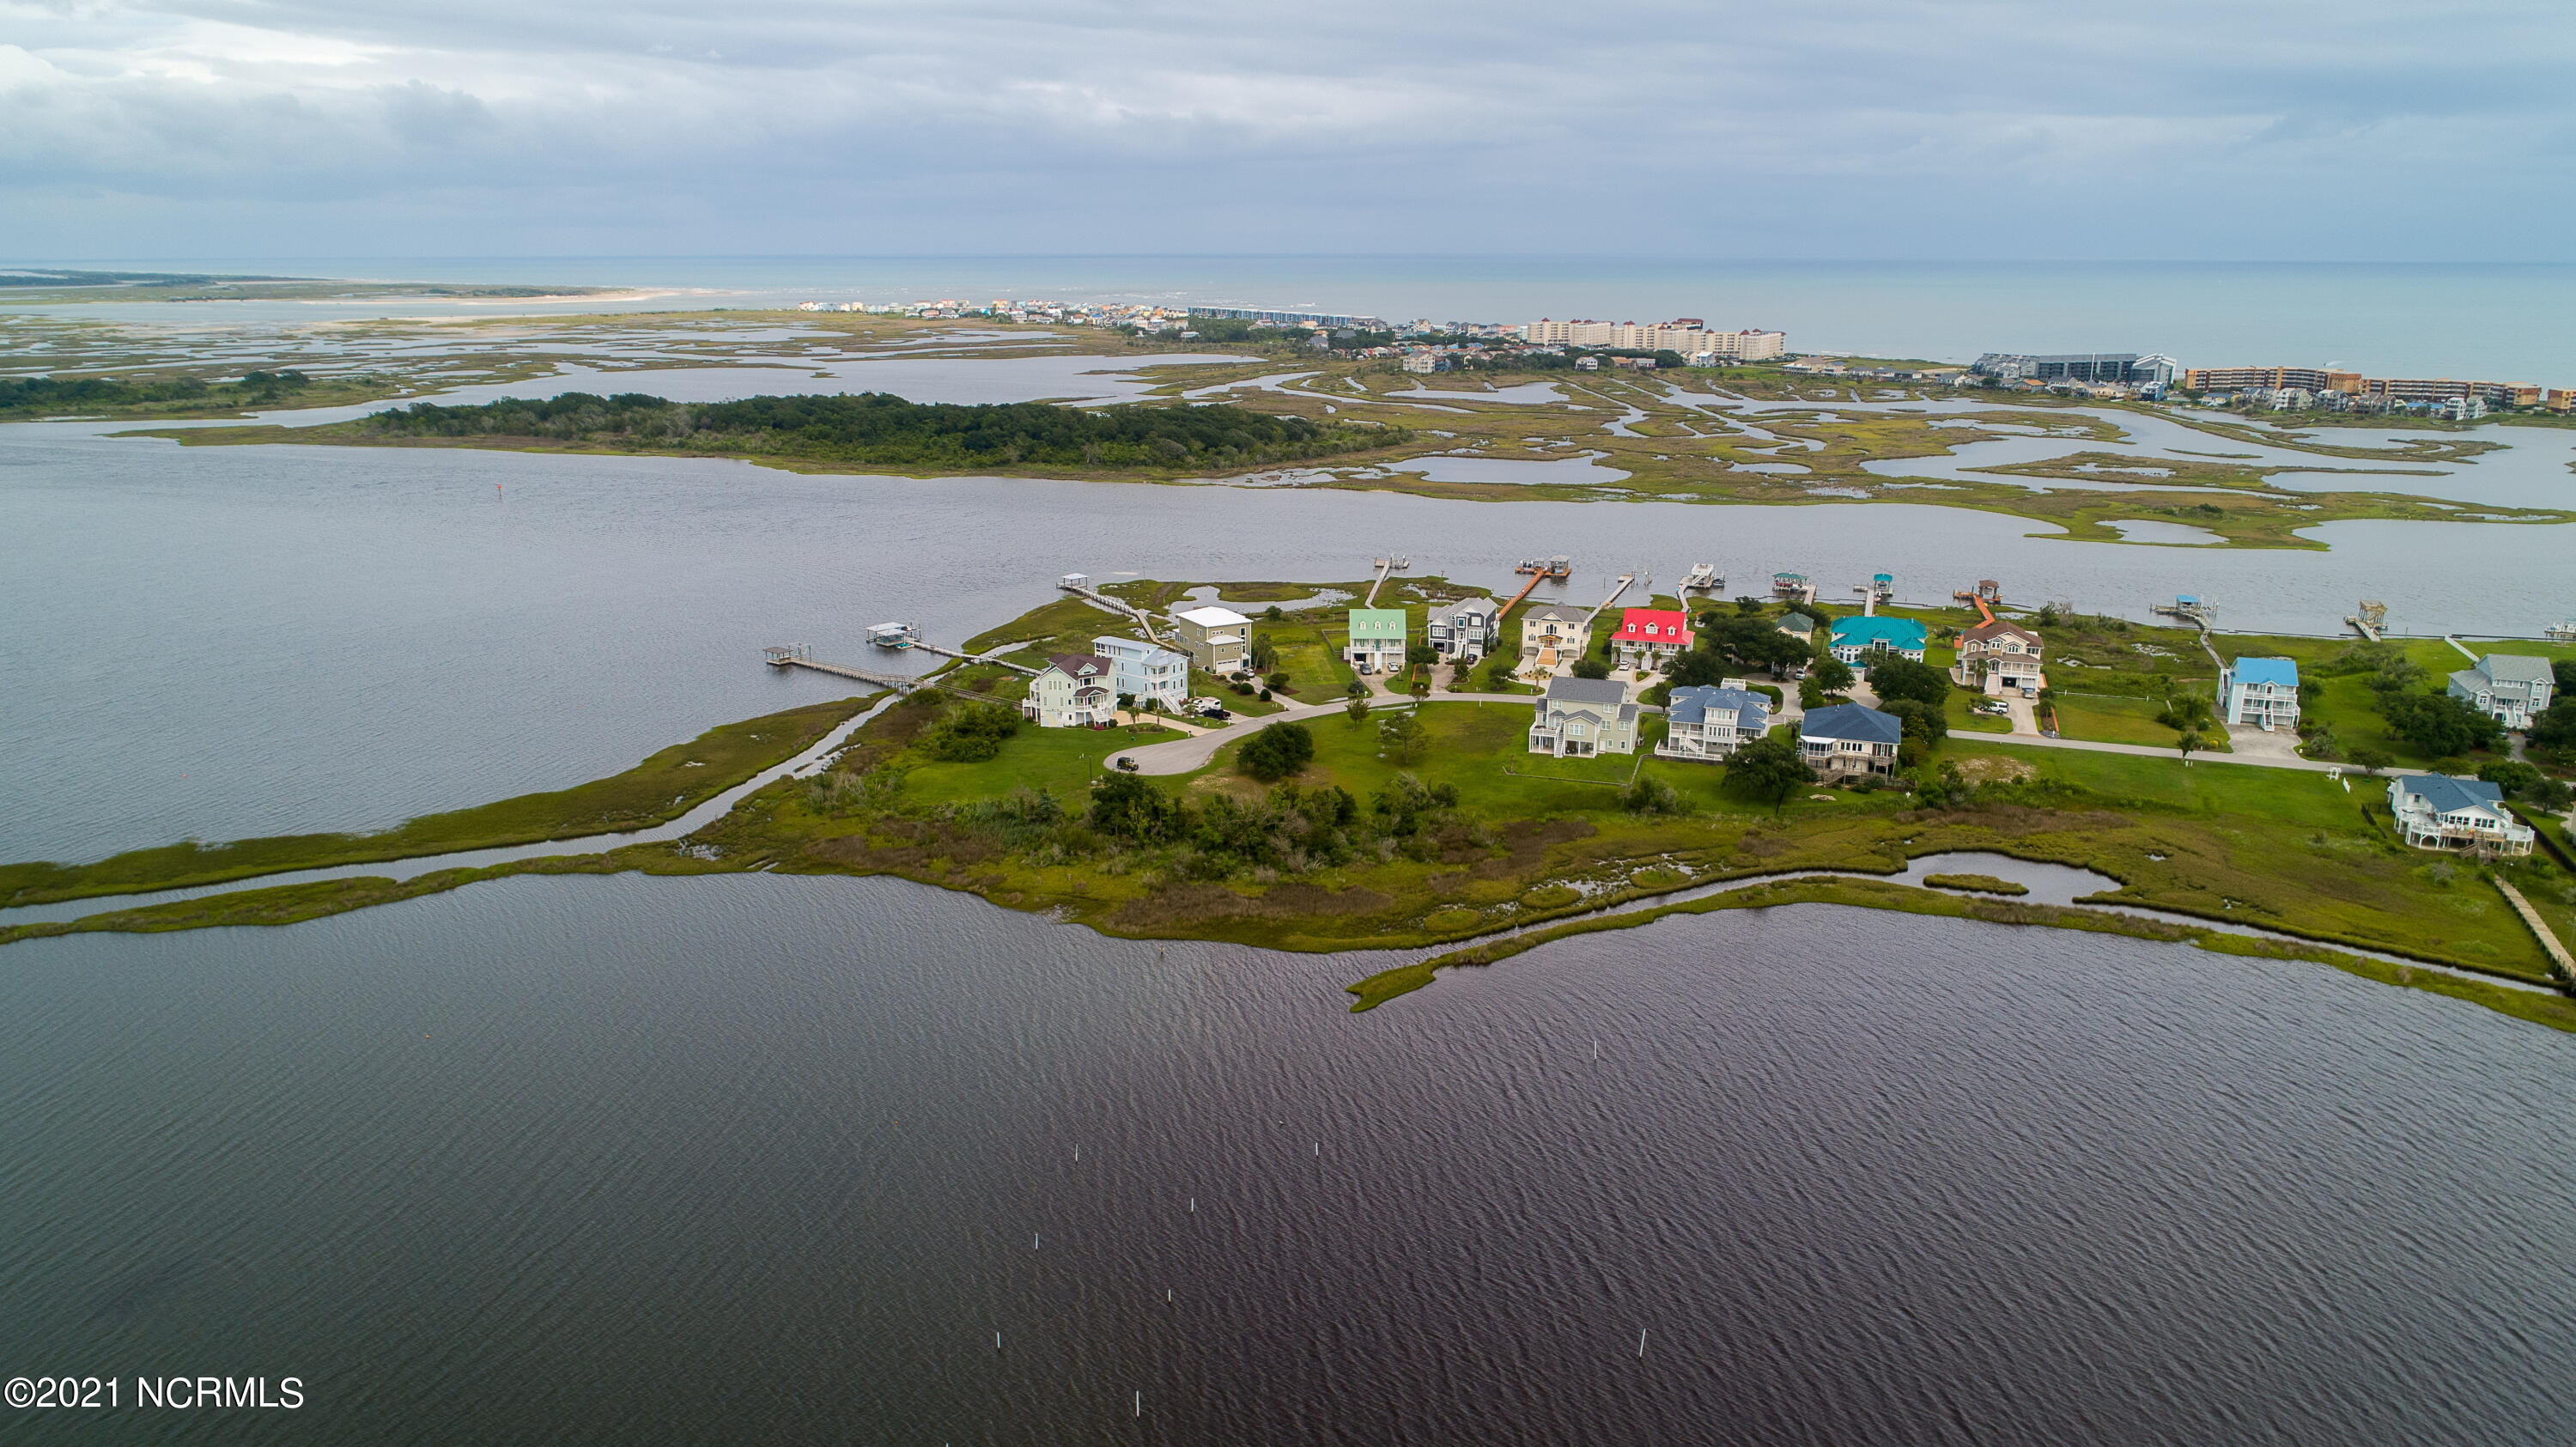 178 Big Hammock Point Road, Sneads Ferry, North Carolina 28460, 3 Bedrooms Bedrooms, 8 Rooms Rooms,3 BathroomsBathrooms,Single family residence,For sale,Big Hammock Point,100277942